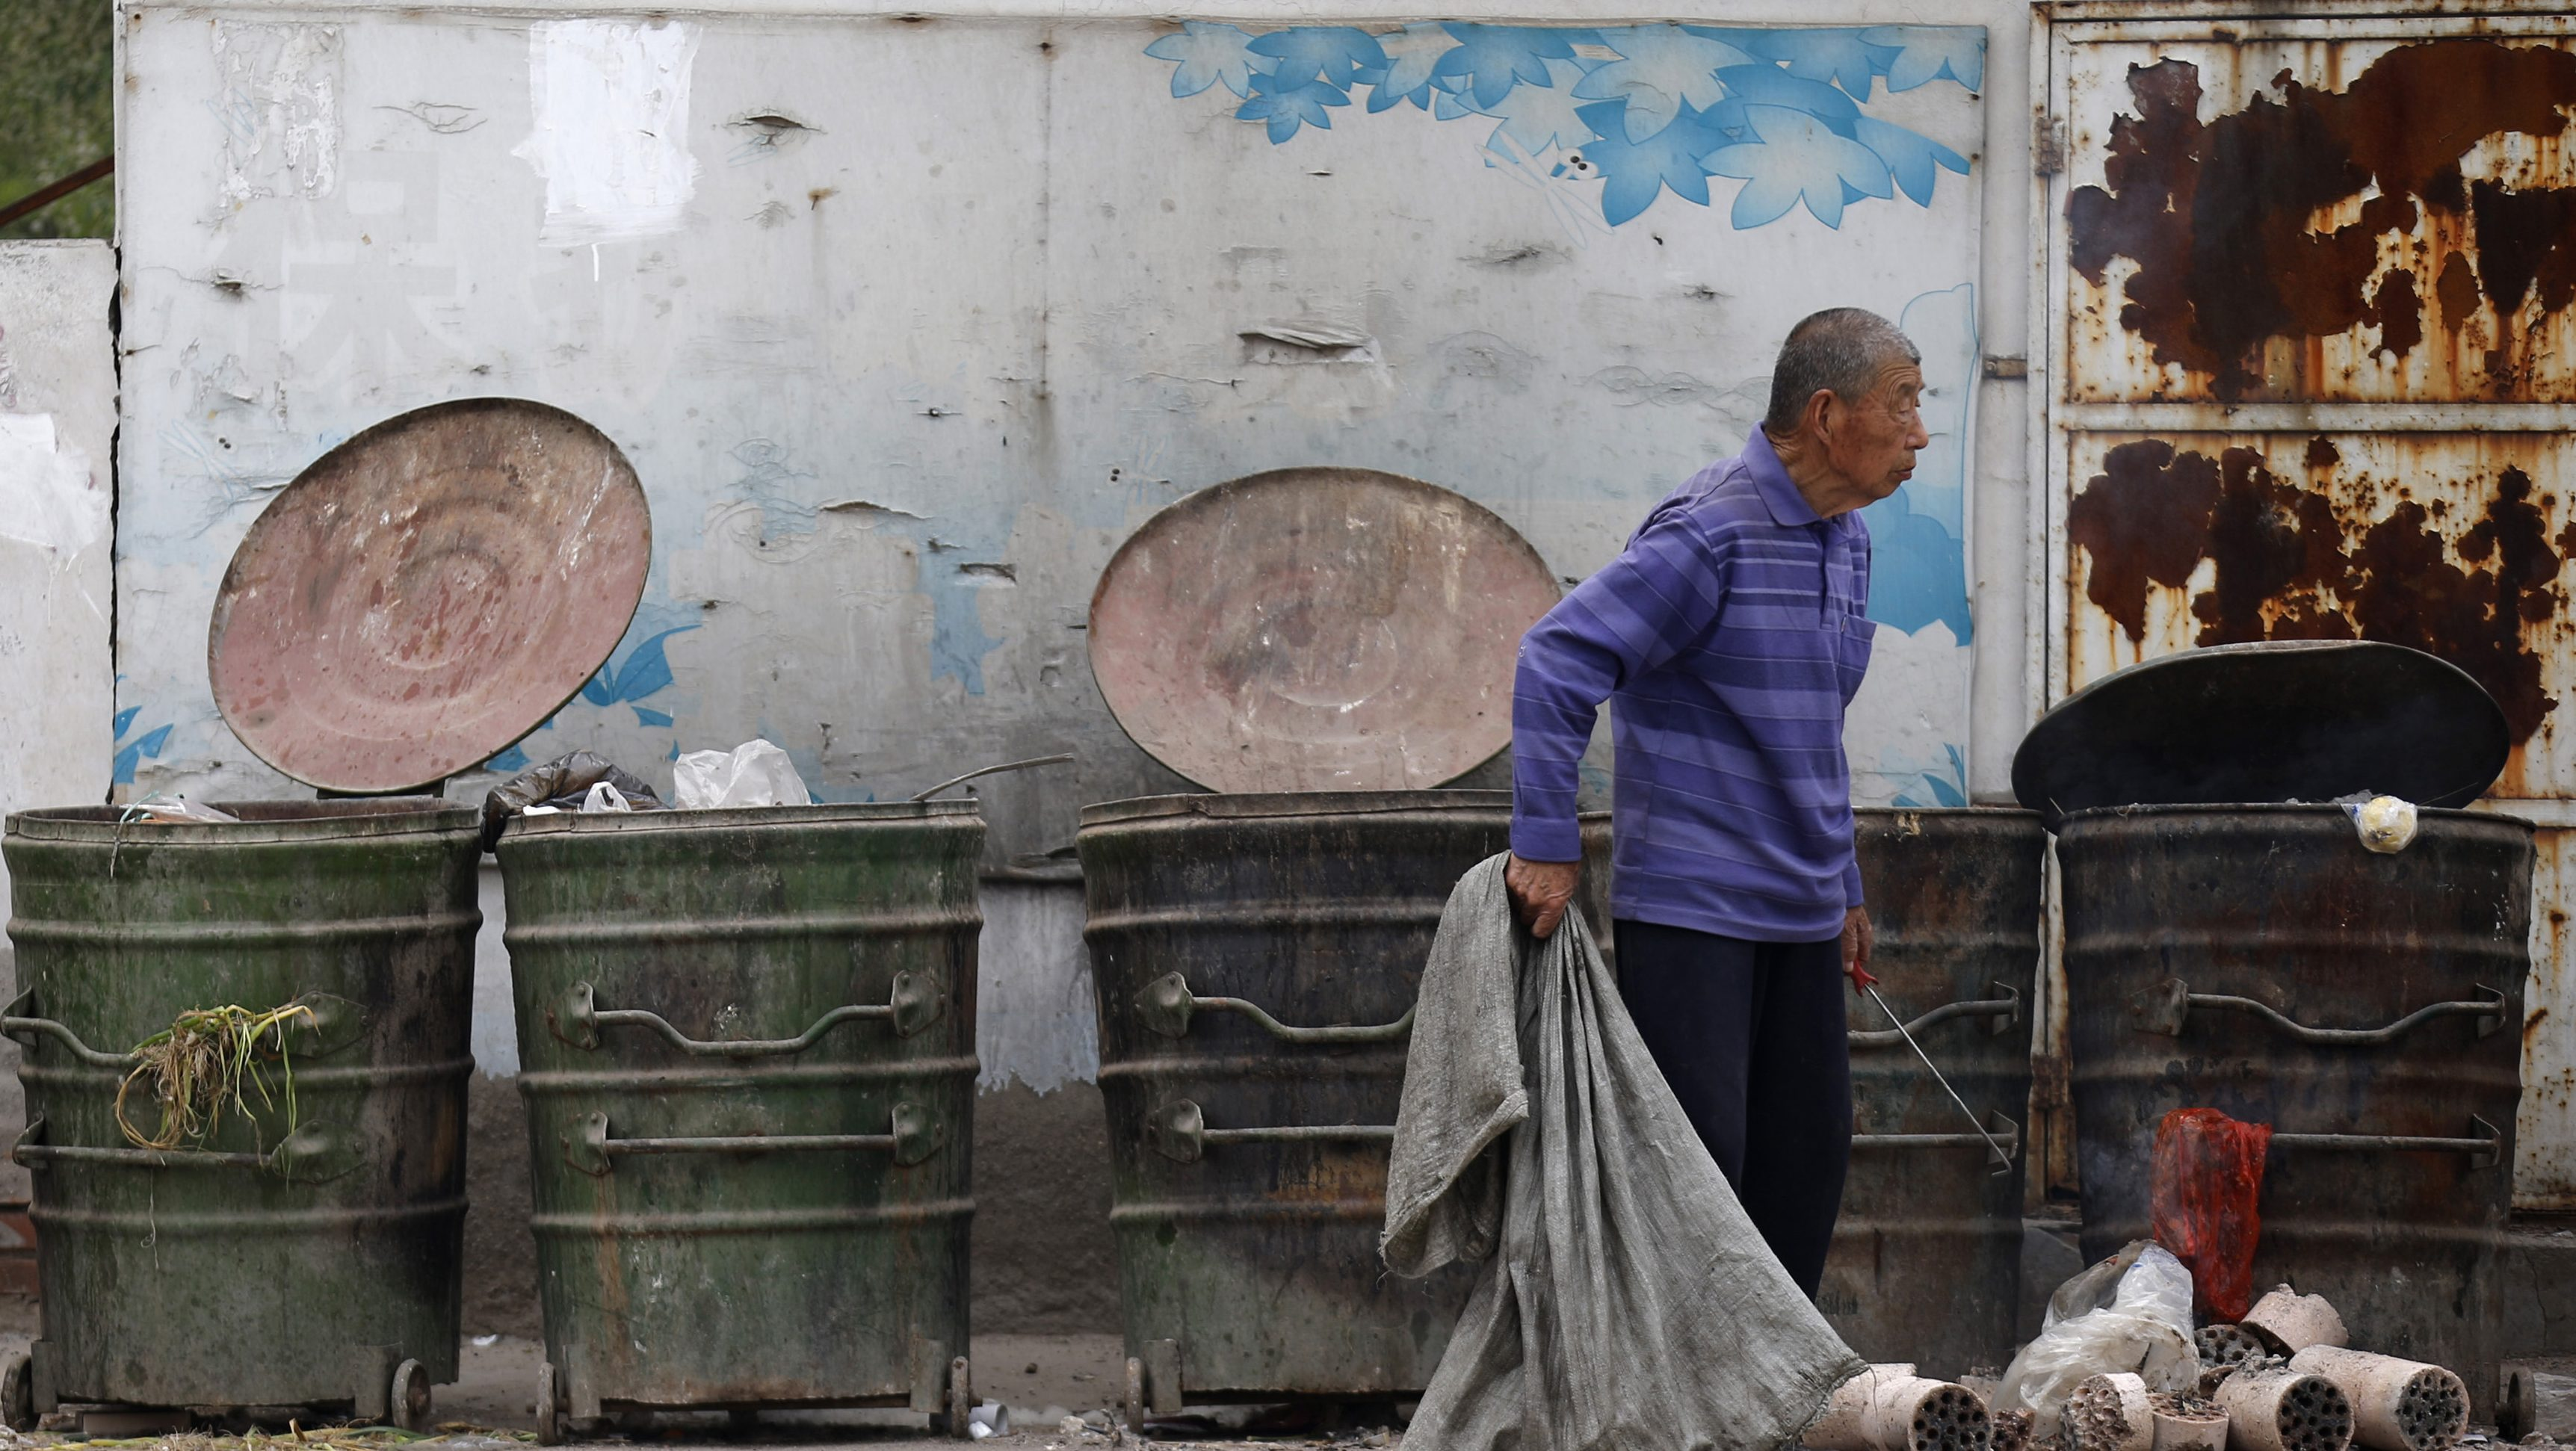 A garbage collector rummages through trash cans to find recyclable garbage at a residential area for migrant workers in Beijing May 7, 2013. For two decades, Chinese local governments have been able to ignore the problem of housing migrants, thanks to the makeshift villages and other arrangements that accommodate about 40 percent of migrants.China has pledged to double household incomes over the coming decade in a bid to close a wealth gap so wide it threatens social stability. Although the proportion of extreme poverty has fallen over recent decades, about 12 percent of the country's 1.3 billion people still live on less than $1.25 per day, according to a 2013 United Nations report.  Picture taken on May 7, 2013. REUTERS/Kim Kyung-Hoon